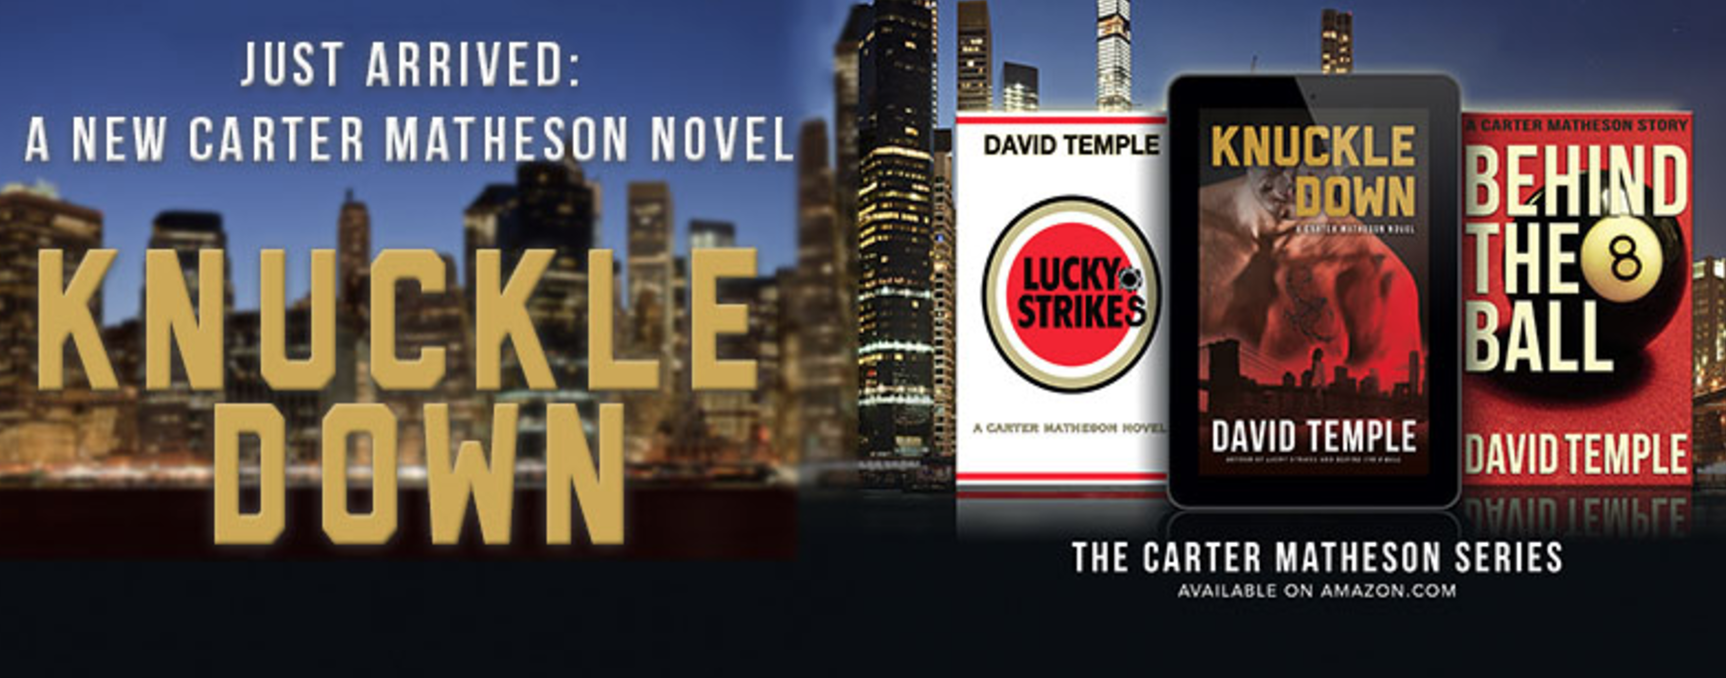 The Carter Matheson Series: LUCKY STRIKES, BEHIND THE 8 BALL and KNUCKLE DOWN